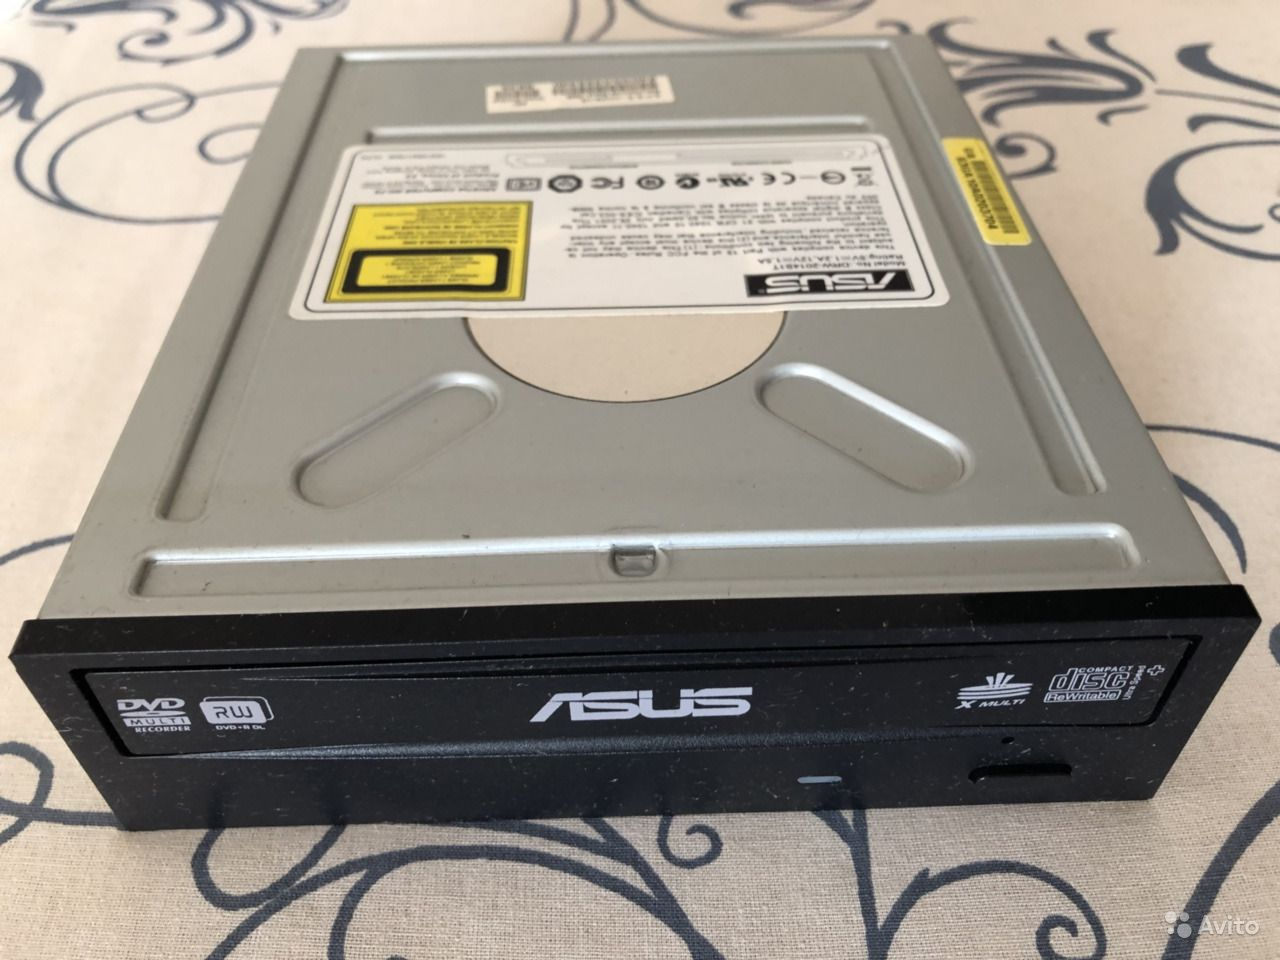 ASUS DRW-2014L1 ATA DEVICE DRIVERS FOR WINDOWS DOWNLOAD